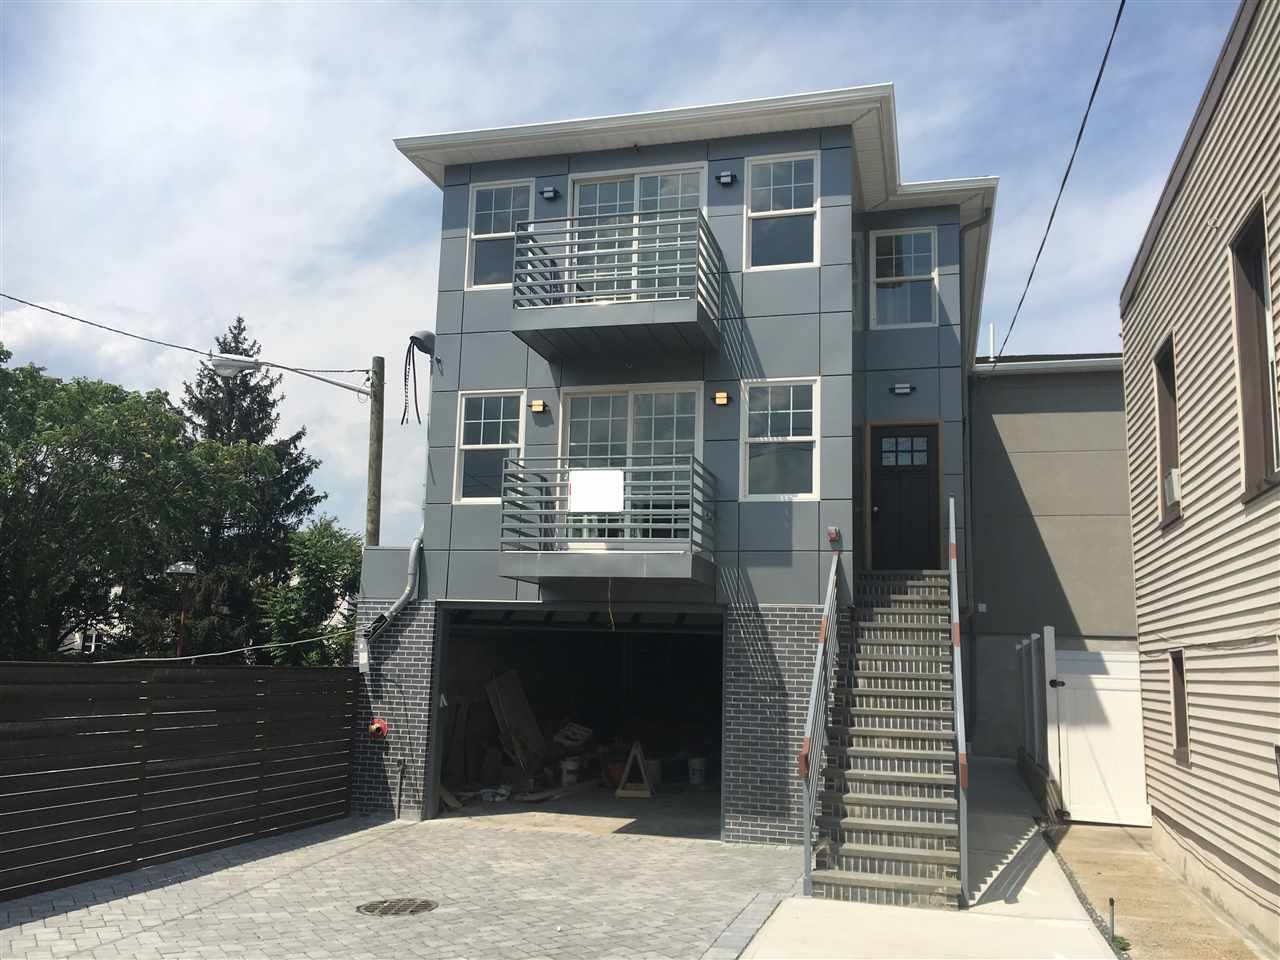 1206 5TH ST A, North Bergen, NJ 07047